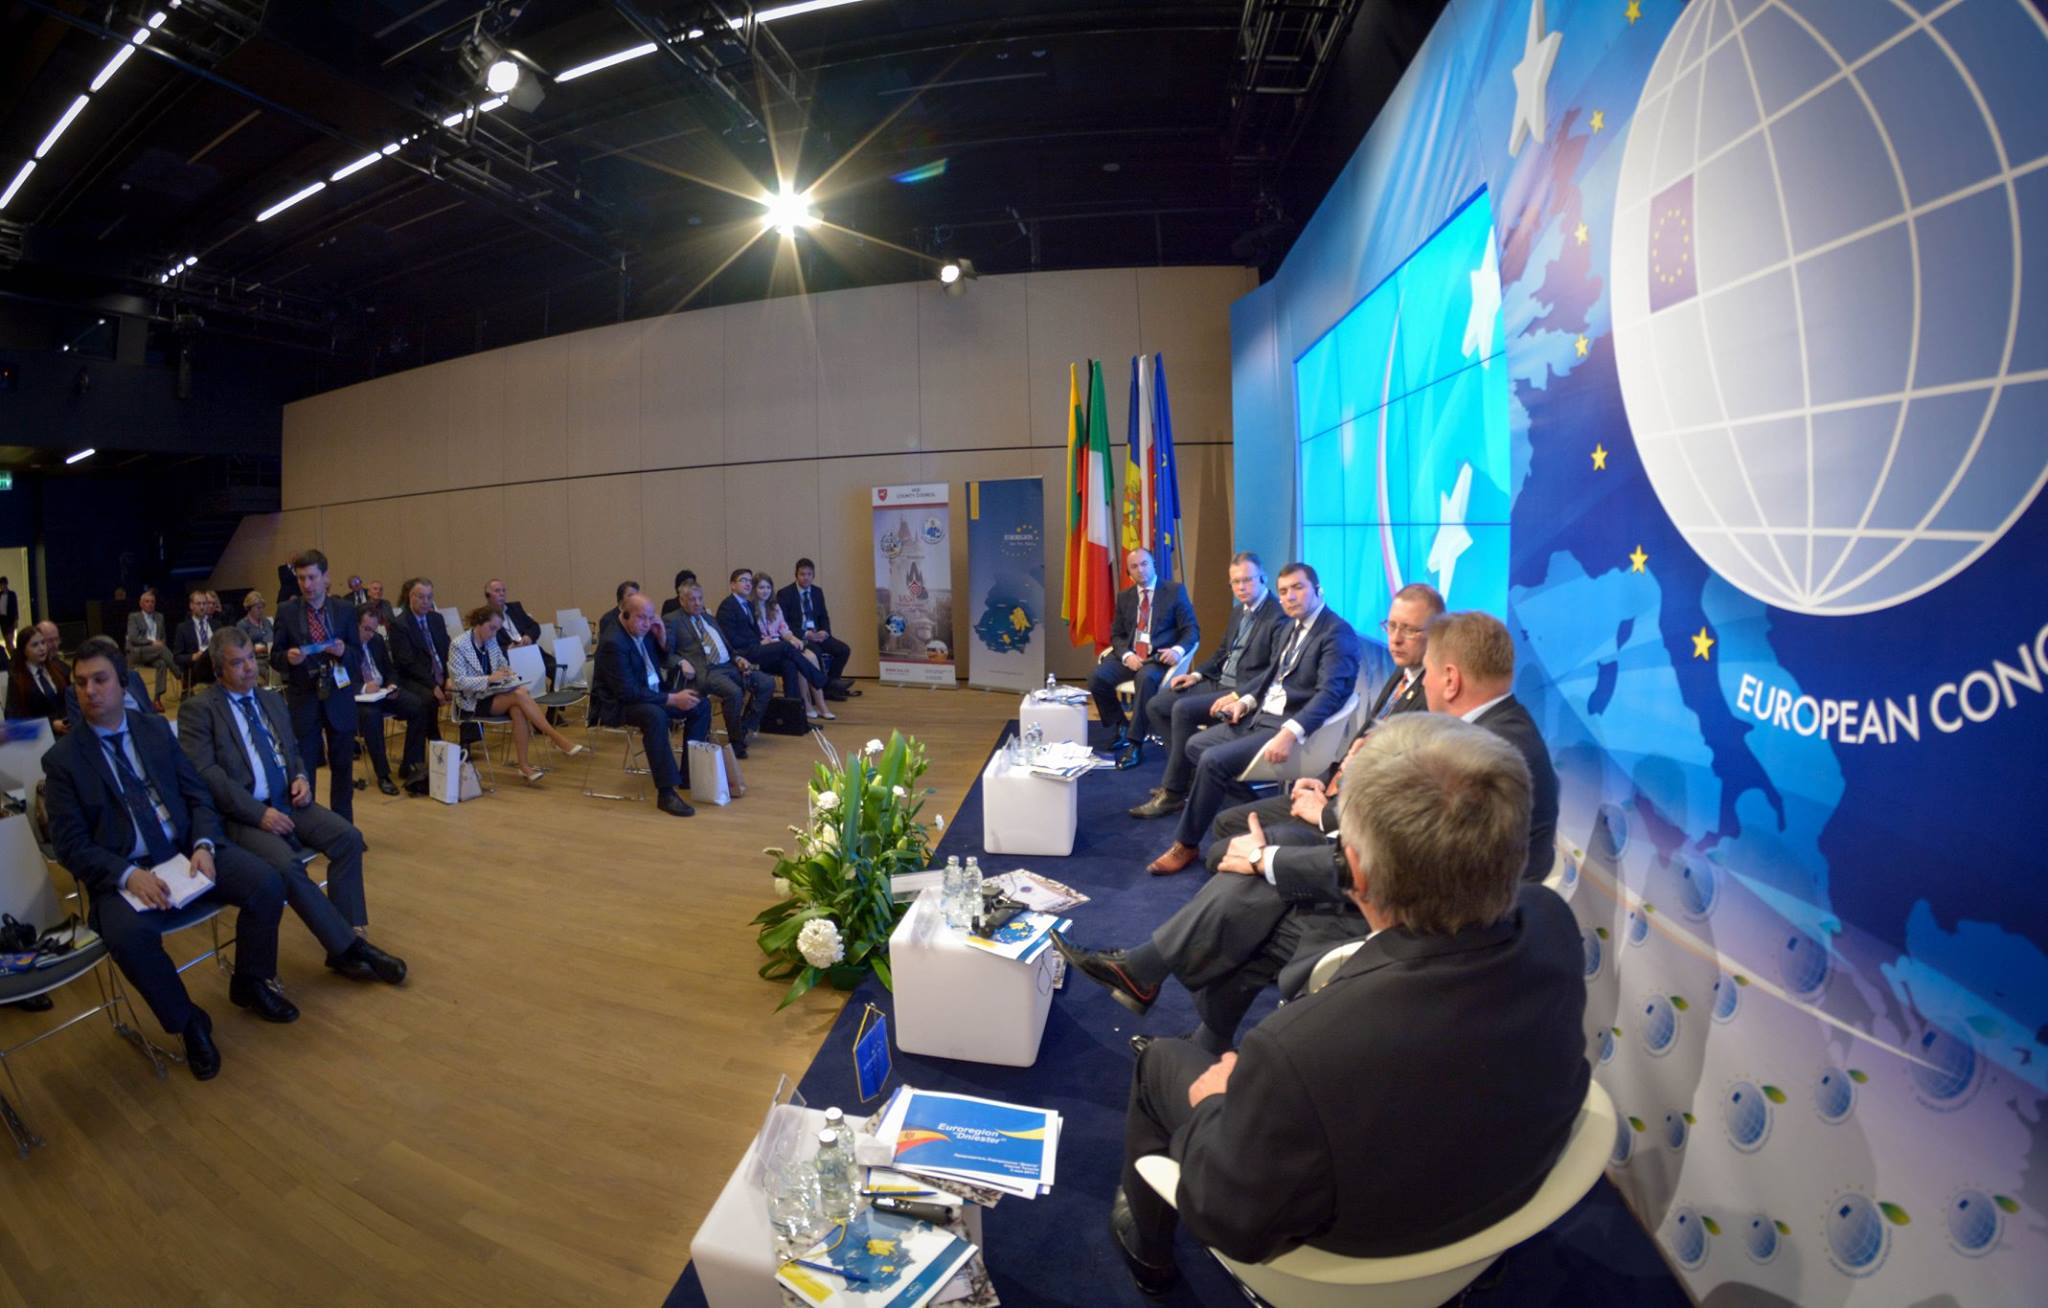 <a class=&quot;amazingslider-posttitle-link&quot; href=&quot;http://www.euroregiune.org/en/european-congress-local-authorities-krakow-4-5-may-2015/&quot; target=&quot;_self&quot;>European Congress of Local Authorities - Krakow, 4-5 May 2015</a>